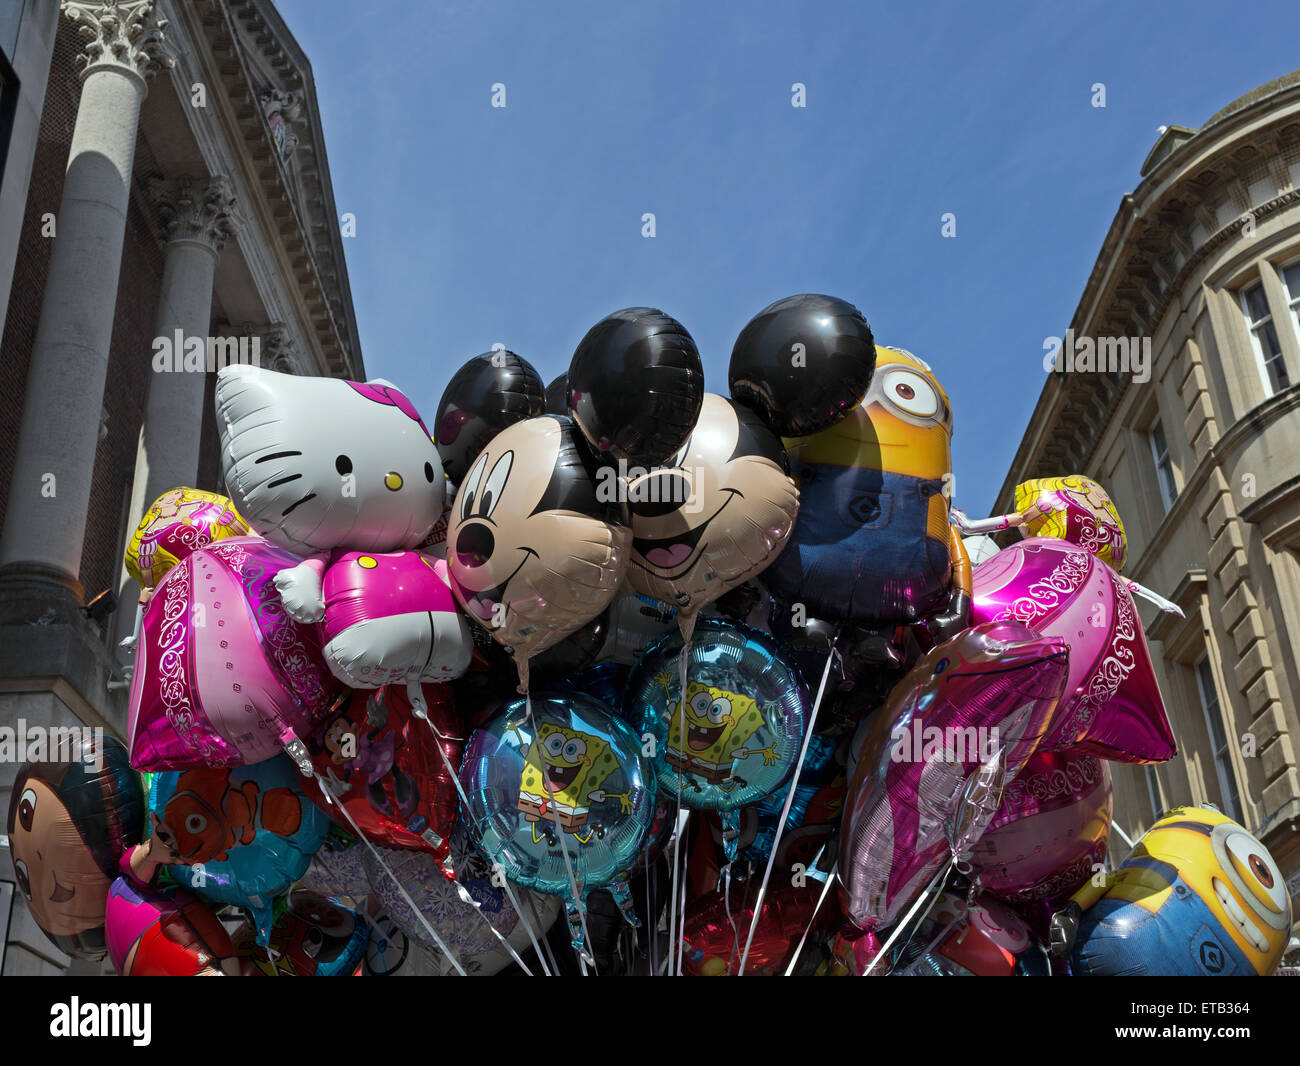 Balloons being sold by a street vendor, Bristol, England Stock Photo